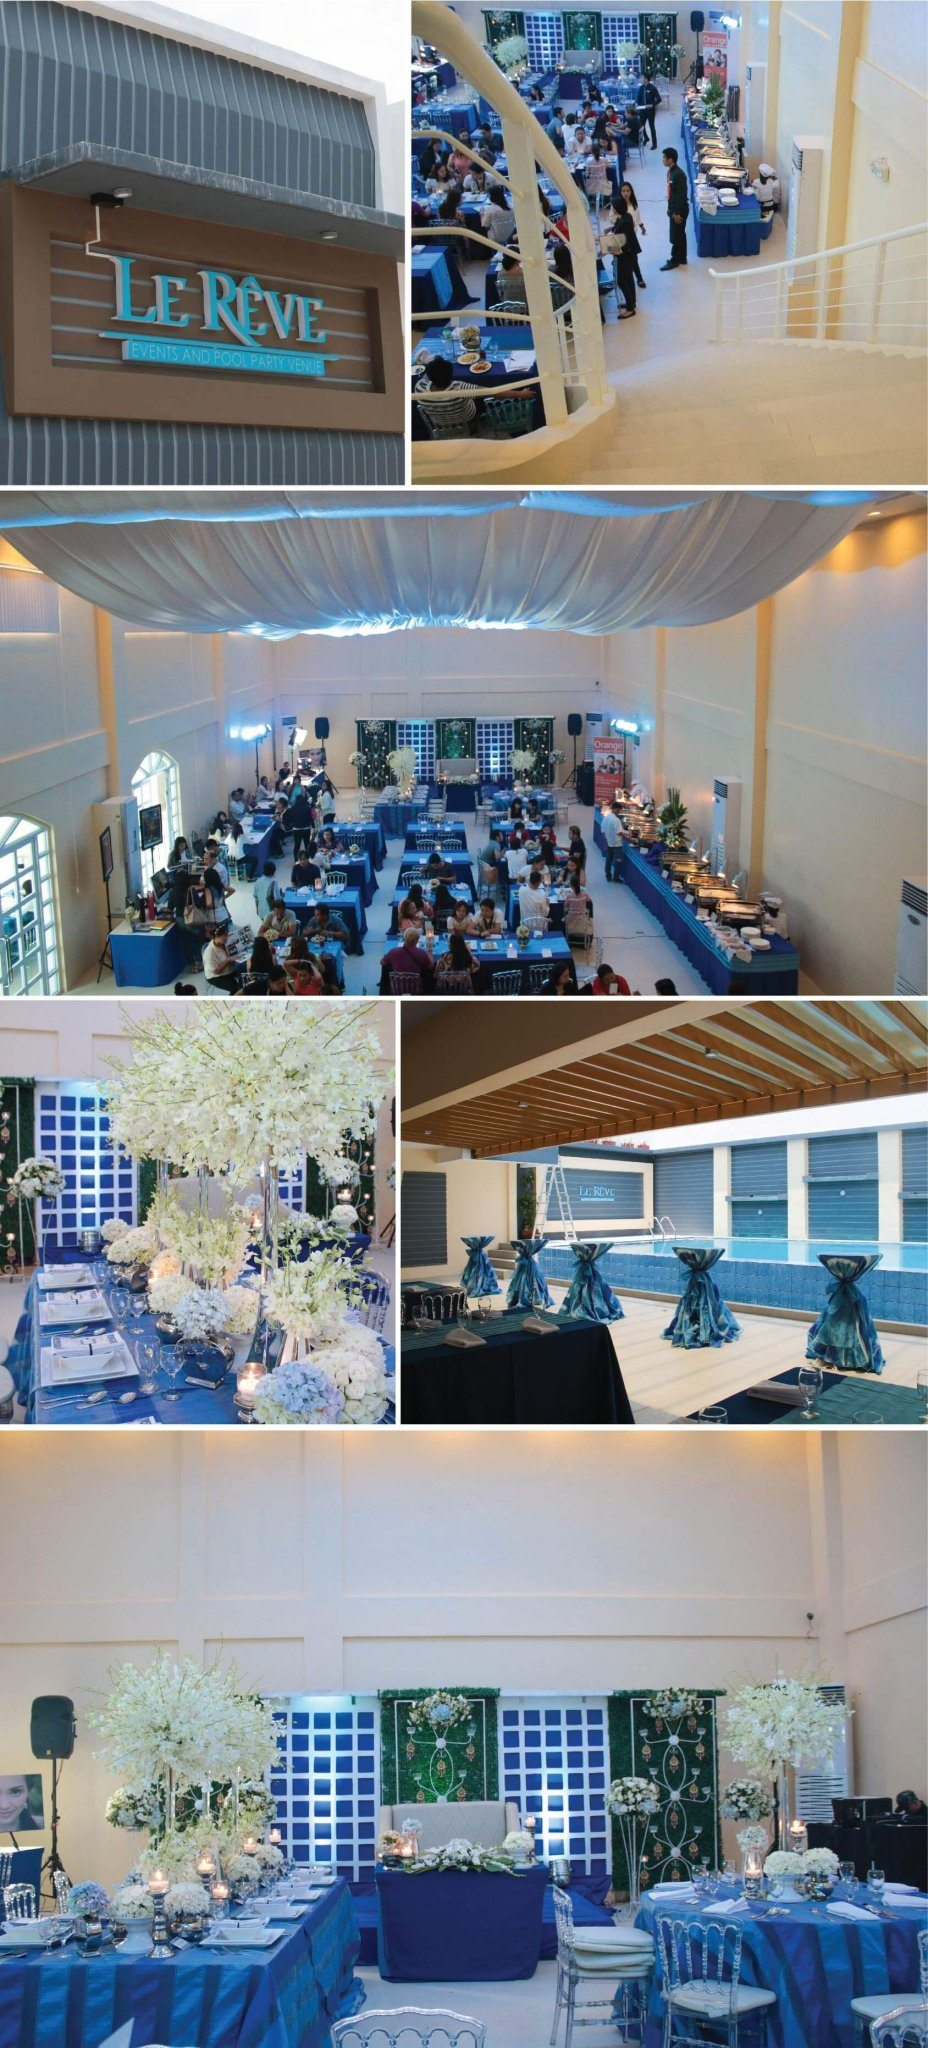 Le Reve Events Venue